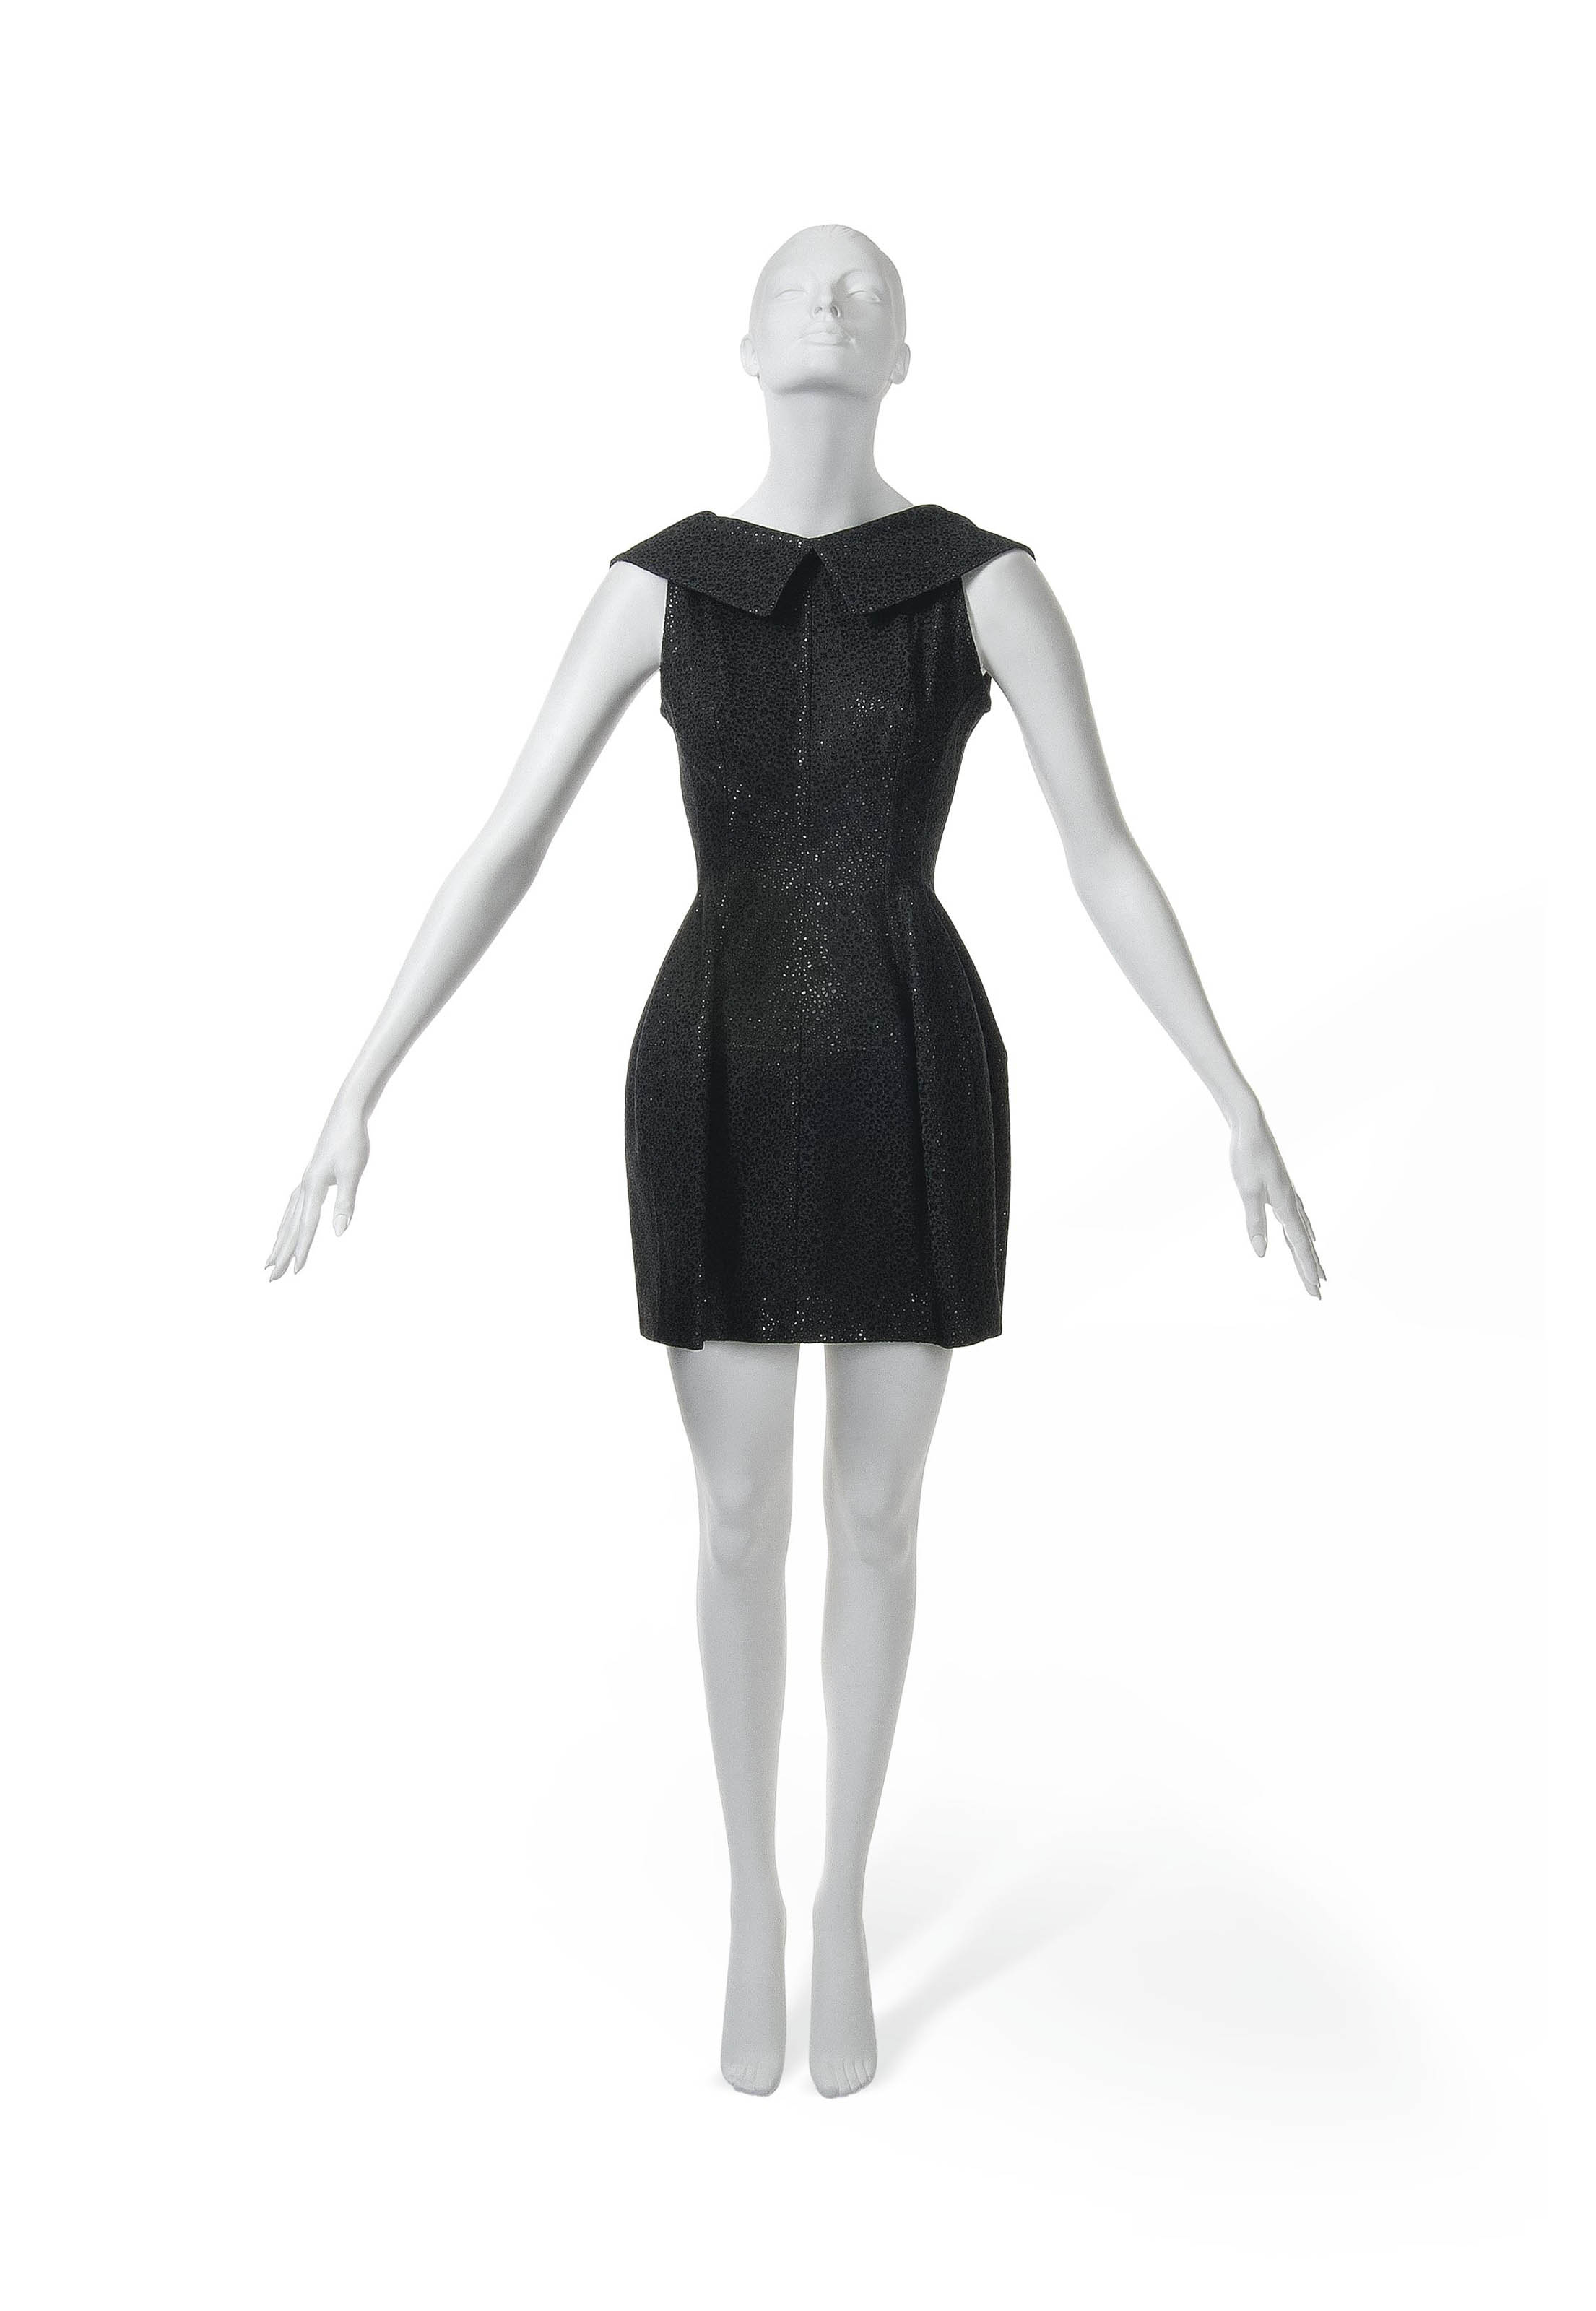 A CHARCOAL COTTON LASER CUT DRESS